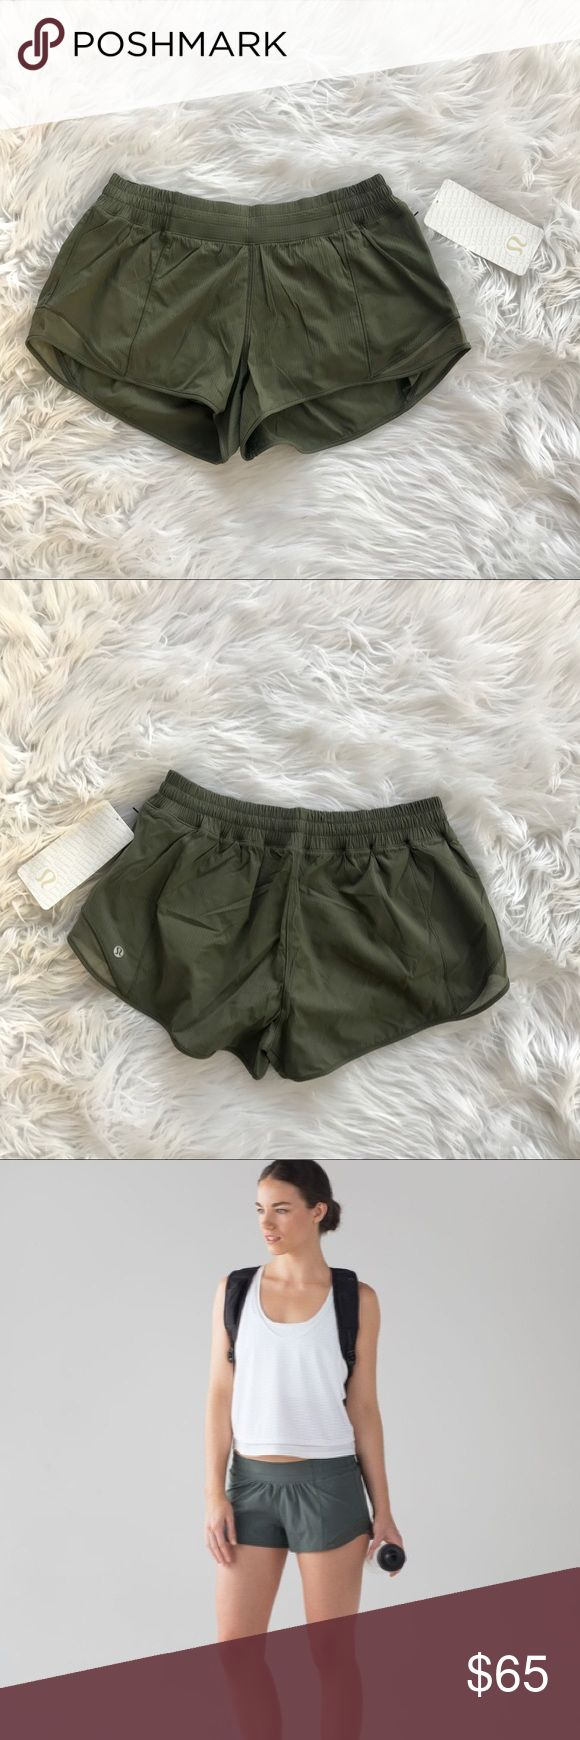 • Lululemon • Hotty Hot Shorts Fatigue Green New - Lululemon - Hotty Hot Shorts ll - Swift Fabric  - Built In Liner  - Secret Stash Pocket - Discreet Zippered Pocket  - Fatigue Green  - New with Tags  - No Trades  - Stock Photos are of a different color, used to show Fit lululemon athletica Shorts